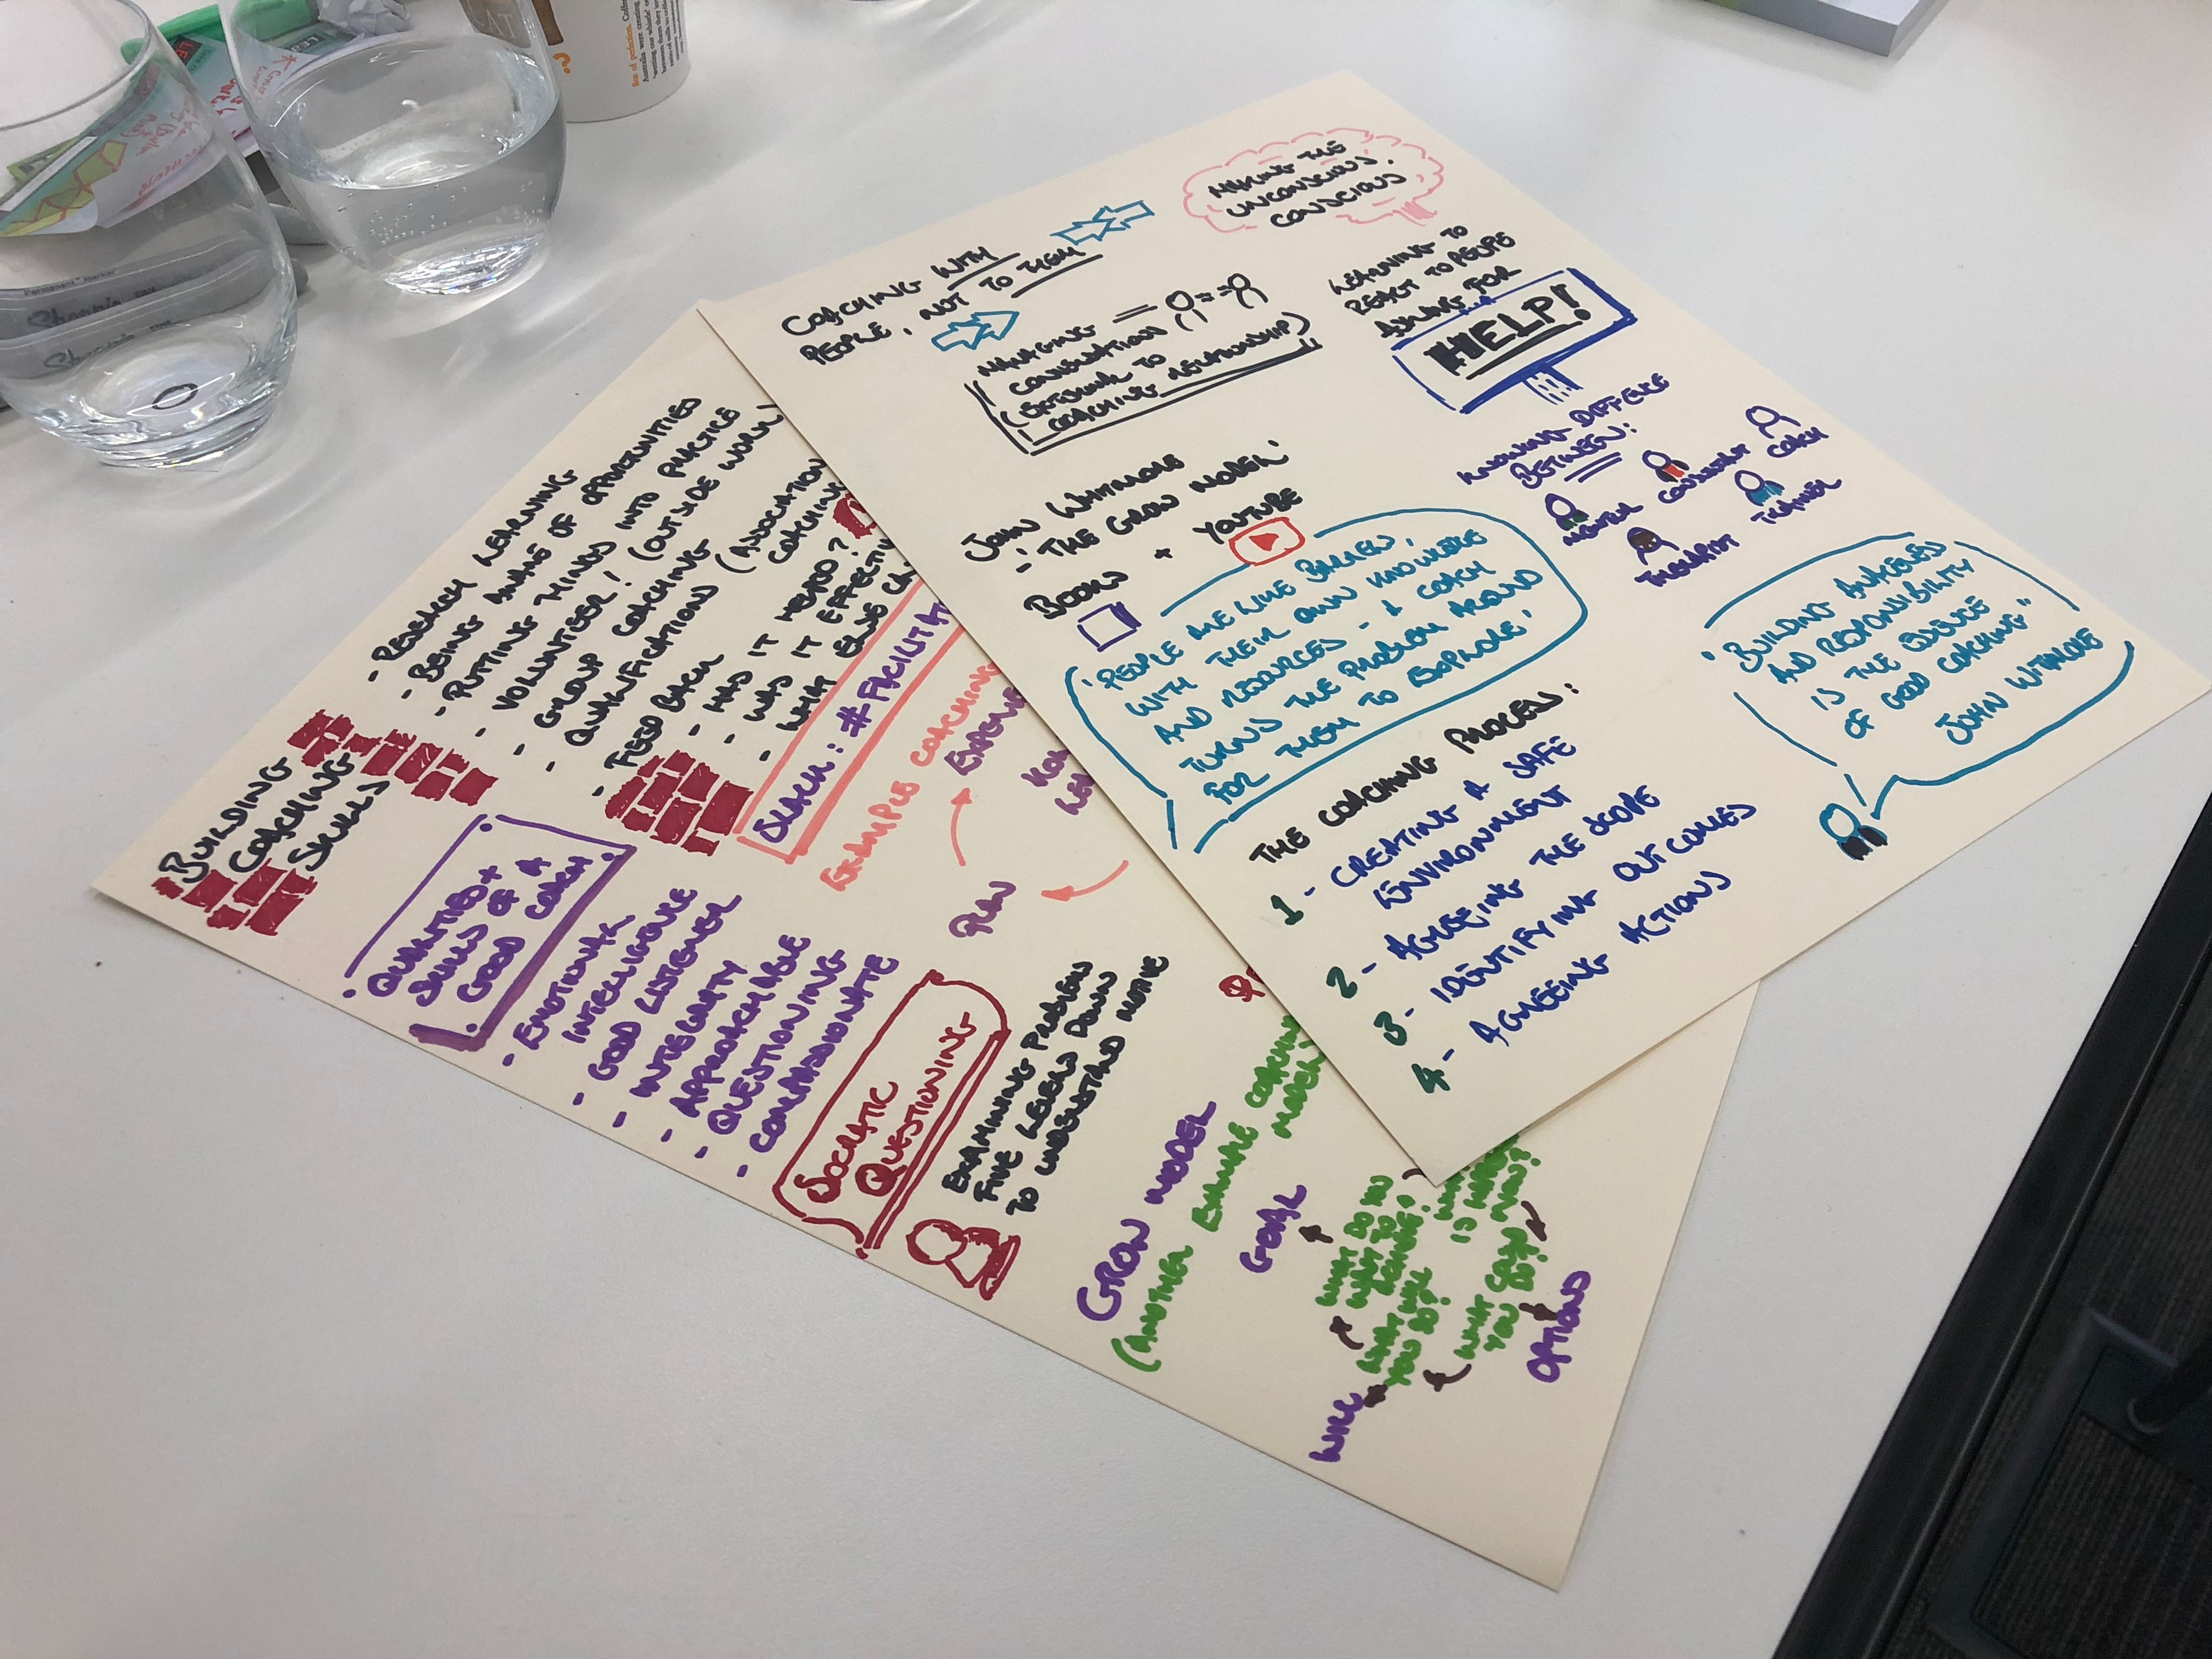 A photo of the notes I took during a coaching workshop